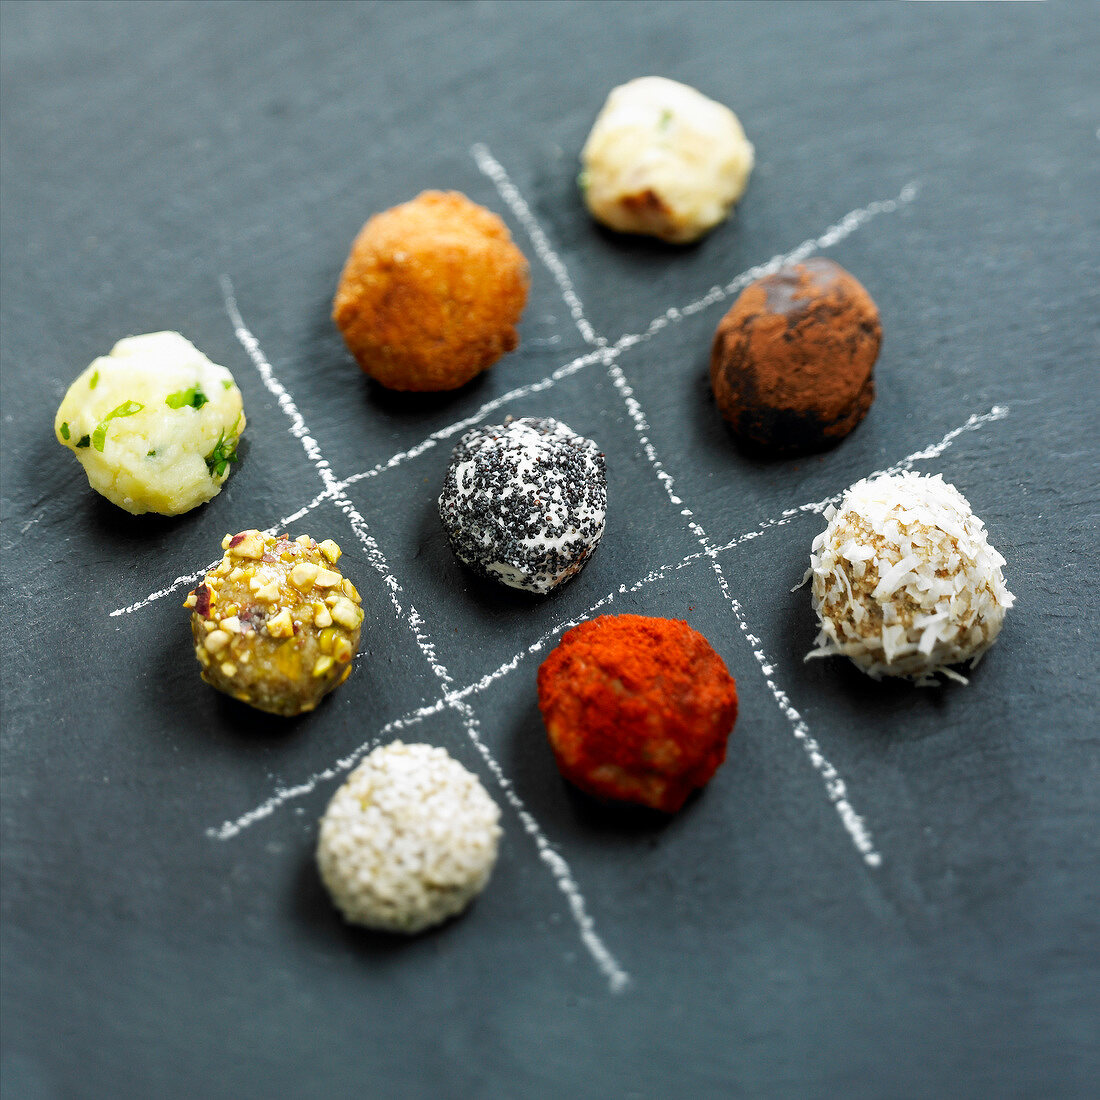 Game on different flavored aperitif balls